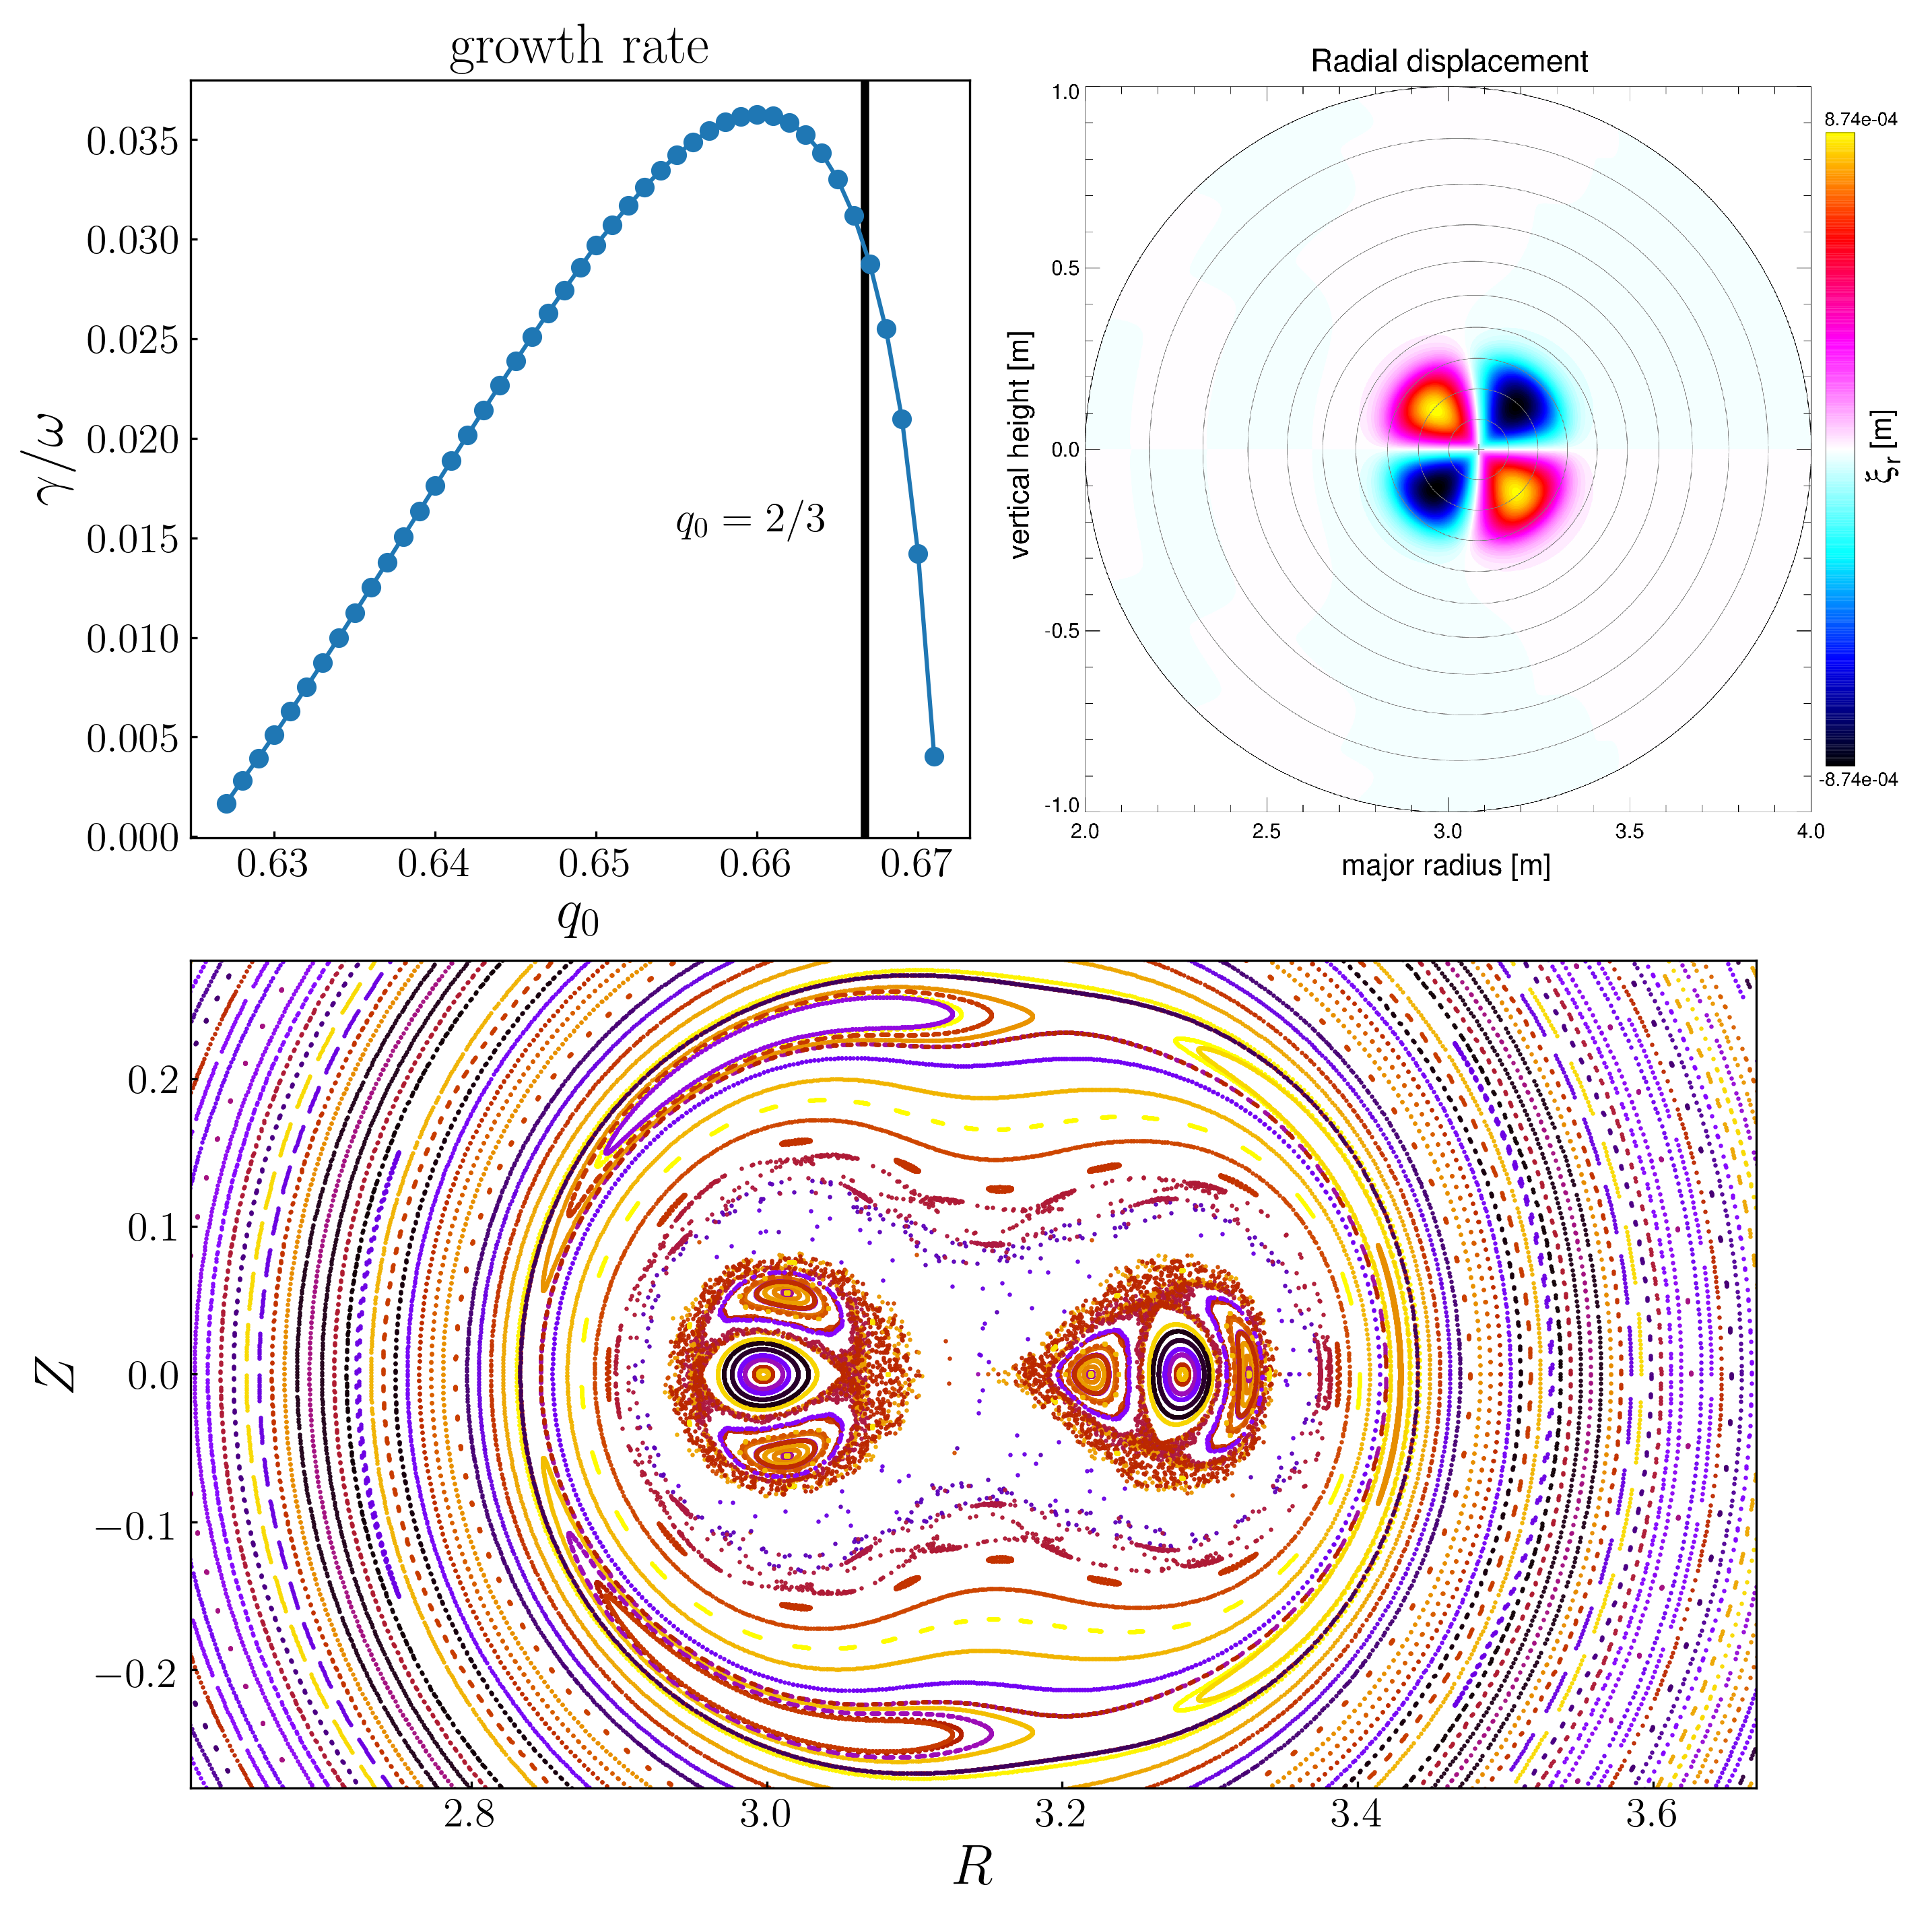 (top left) growt rate of the ideally unstable $2/3$ mode. (top right) radial displacement of this mode. (bottom) Stochastization of the core region due to the perturbed field associated with this mode.